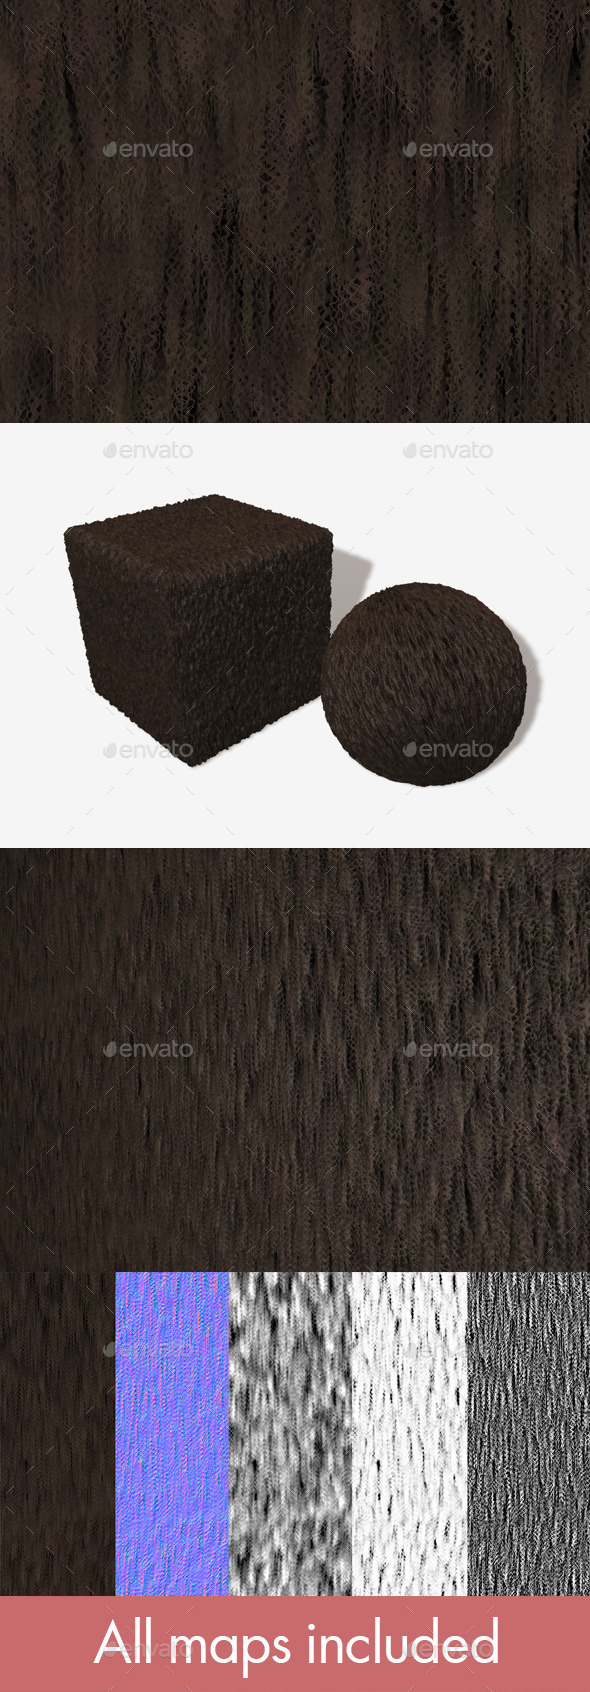 Frizzy Brown Fur Seamless Texture - 3DOcean Item for Sale